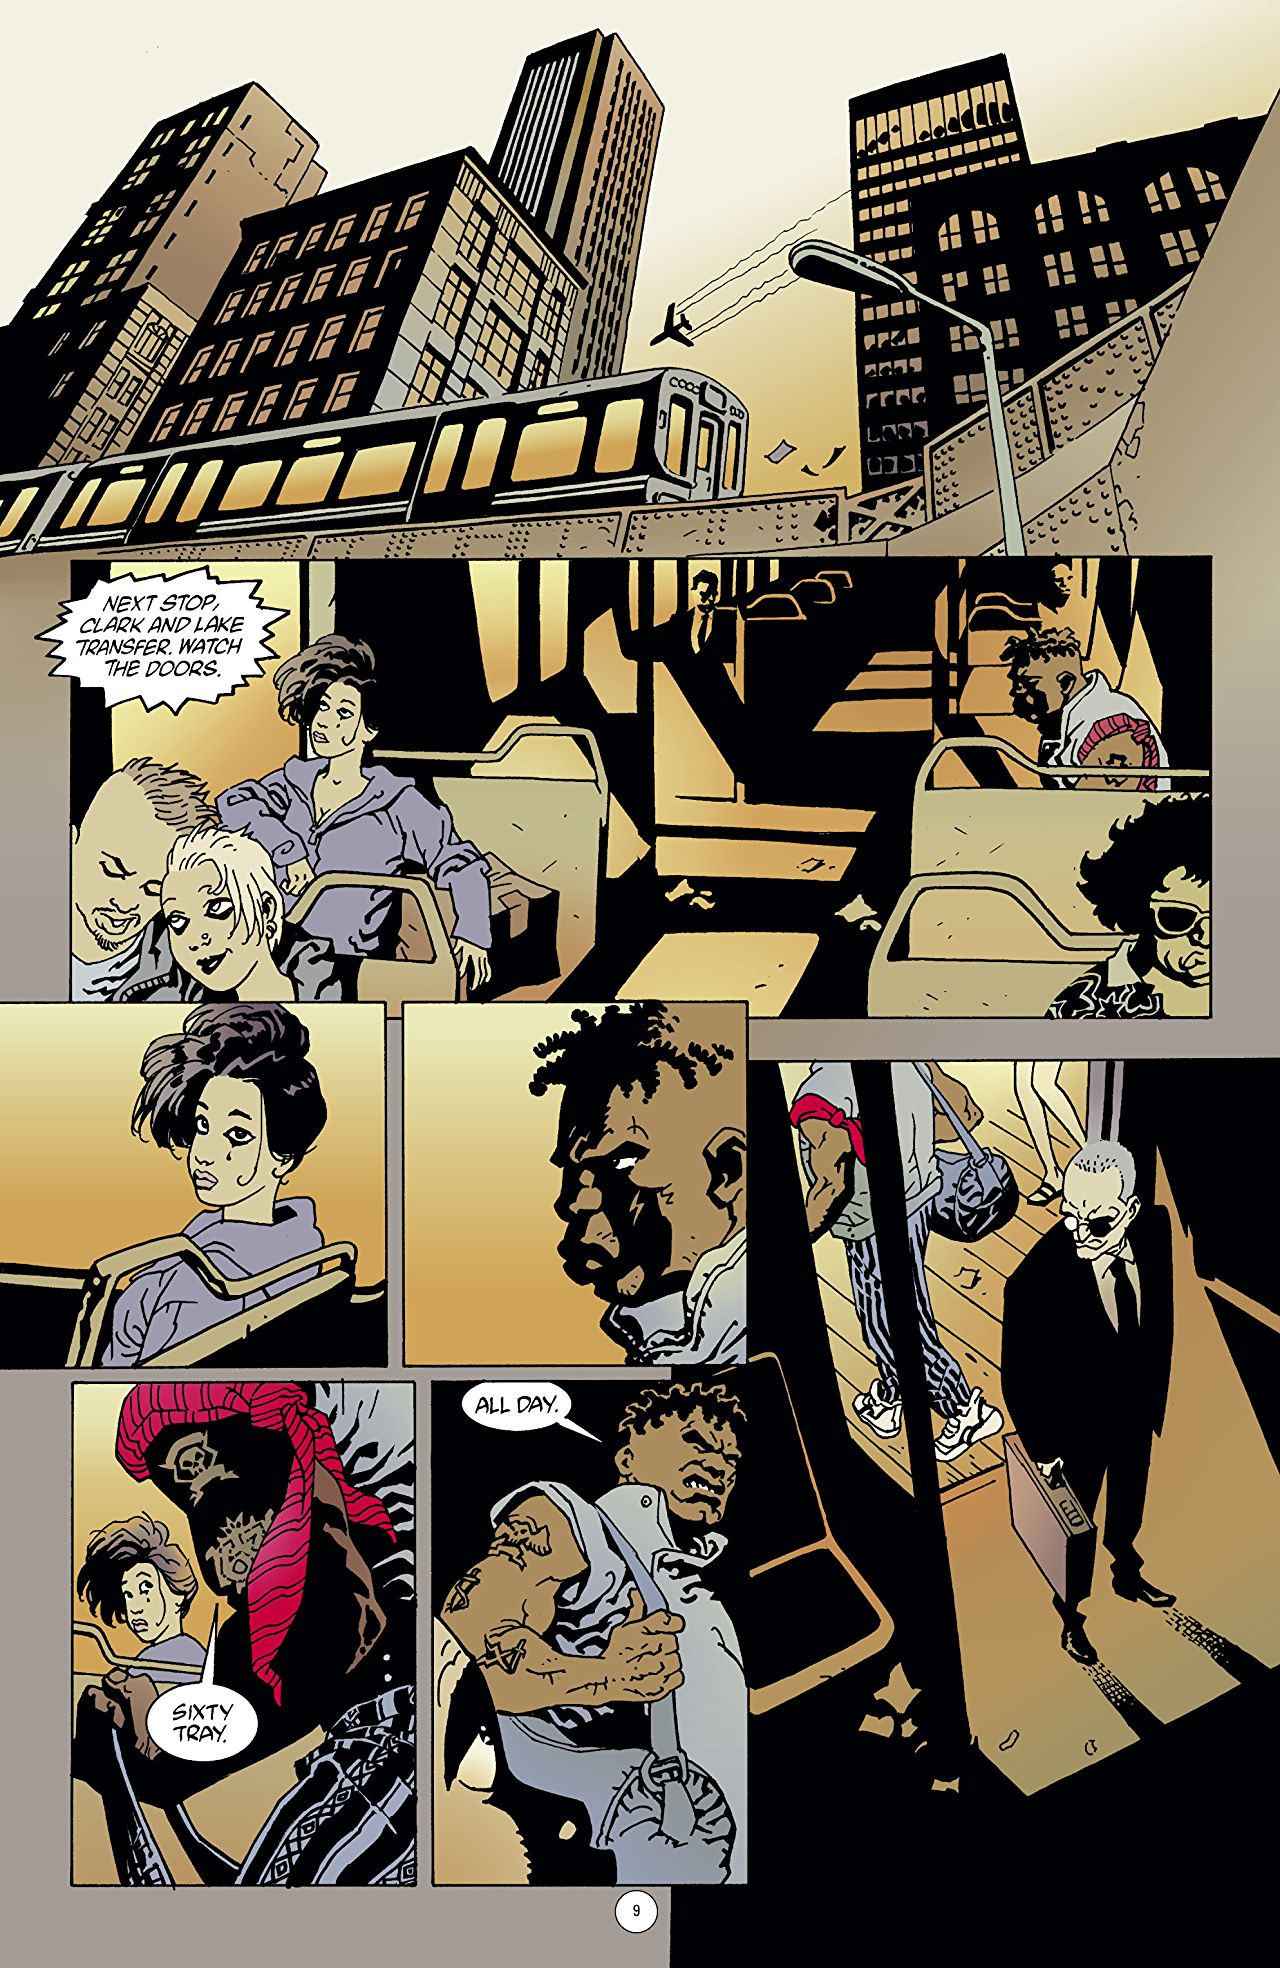 100 Bullets First Shot Last Call review